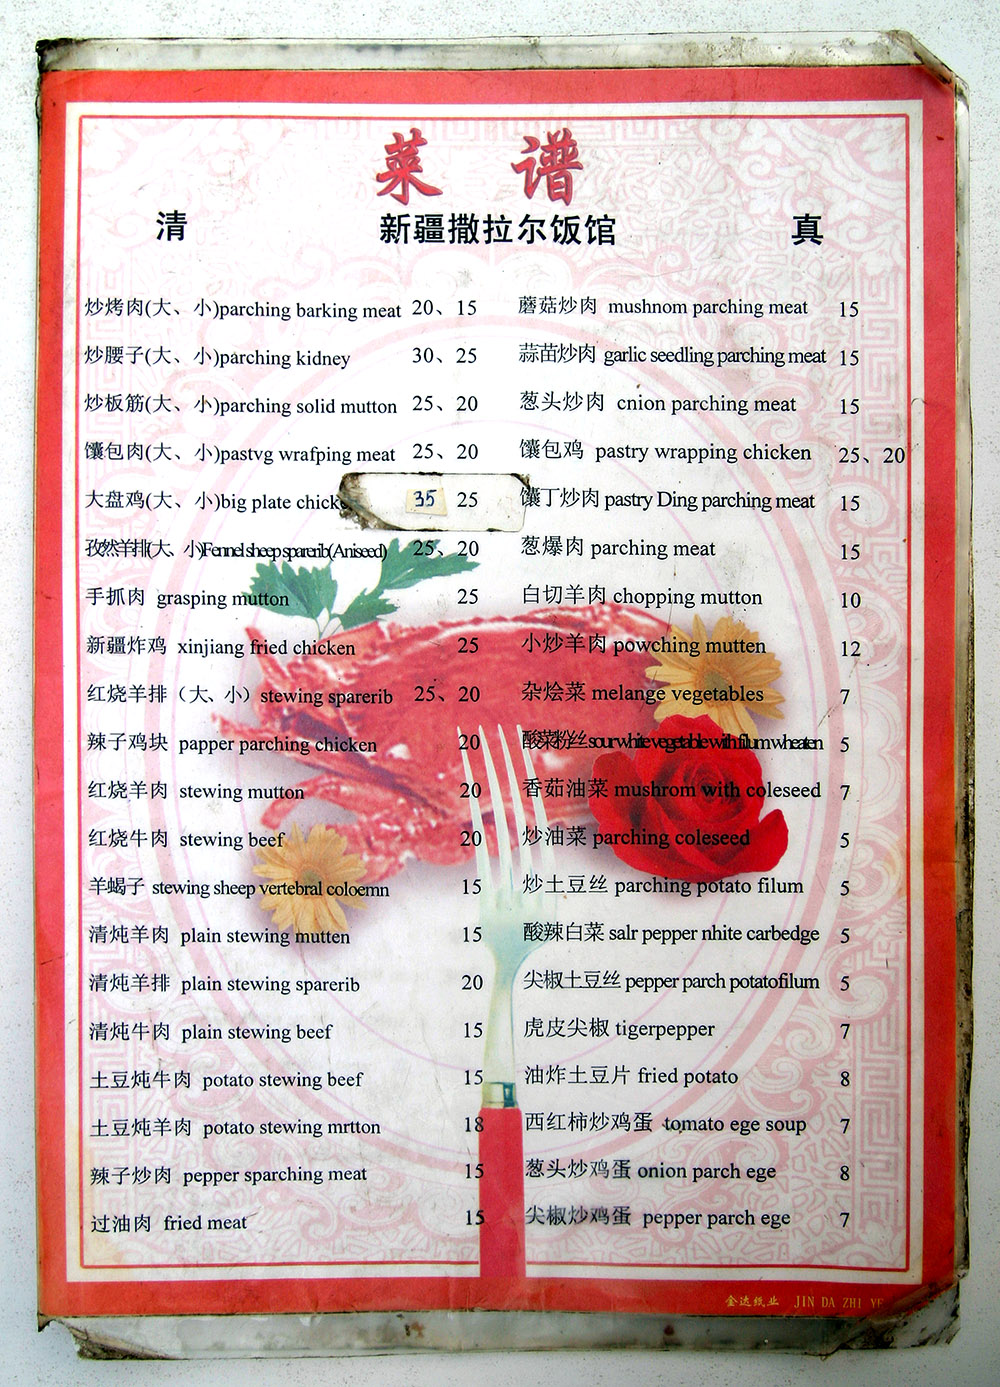 china/2006/beijing_parching_menu